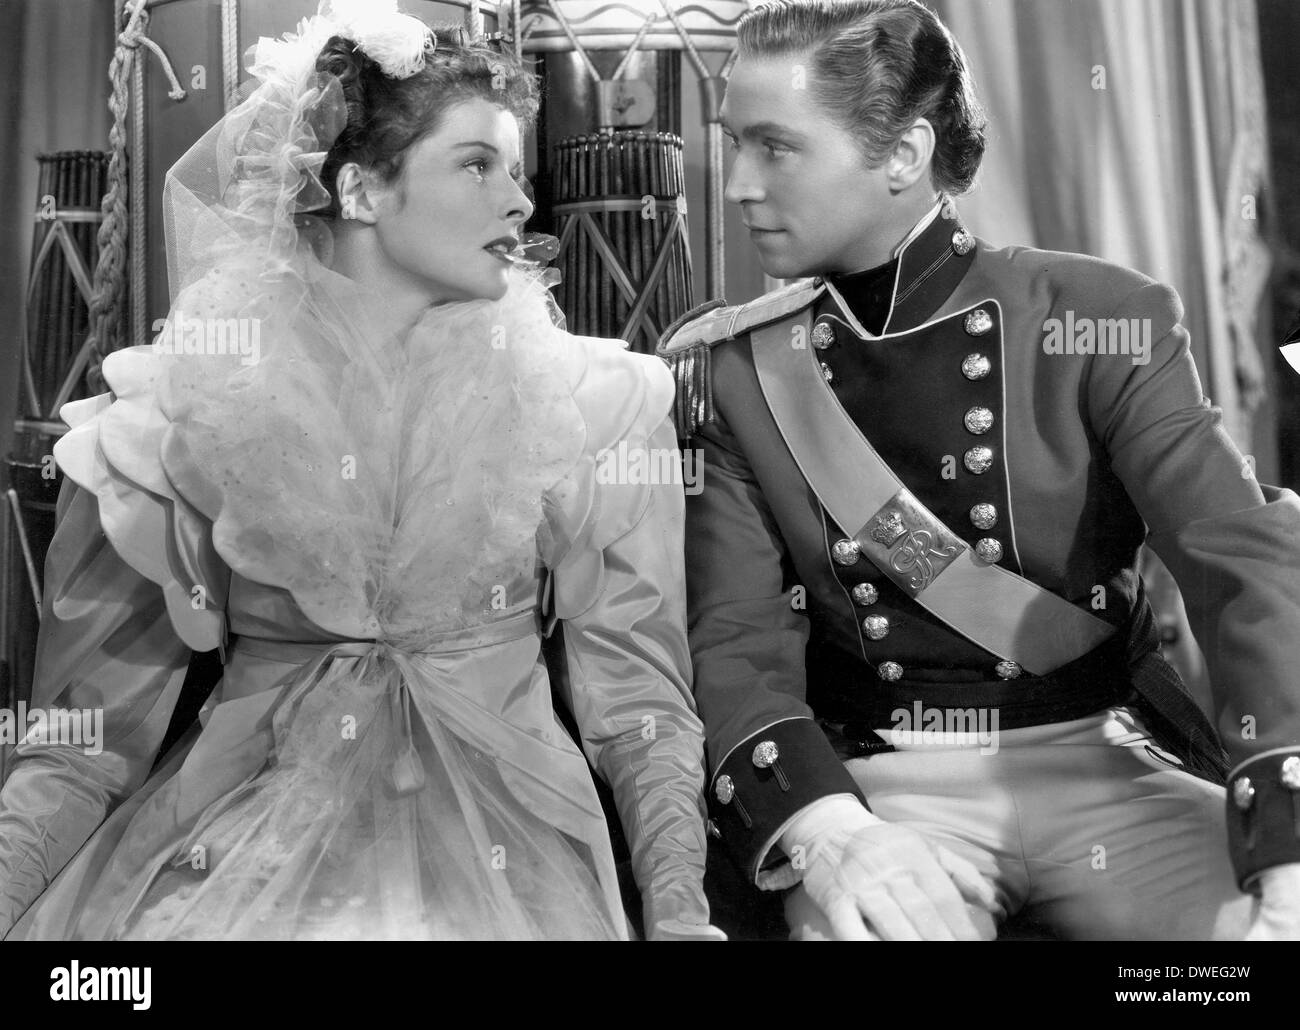 Franchot Tone and Katharine Hepburn, on-set of the Film, 'Quality Street' Directed by George Stevens, 1937 - Stock Image